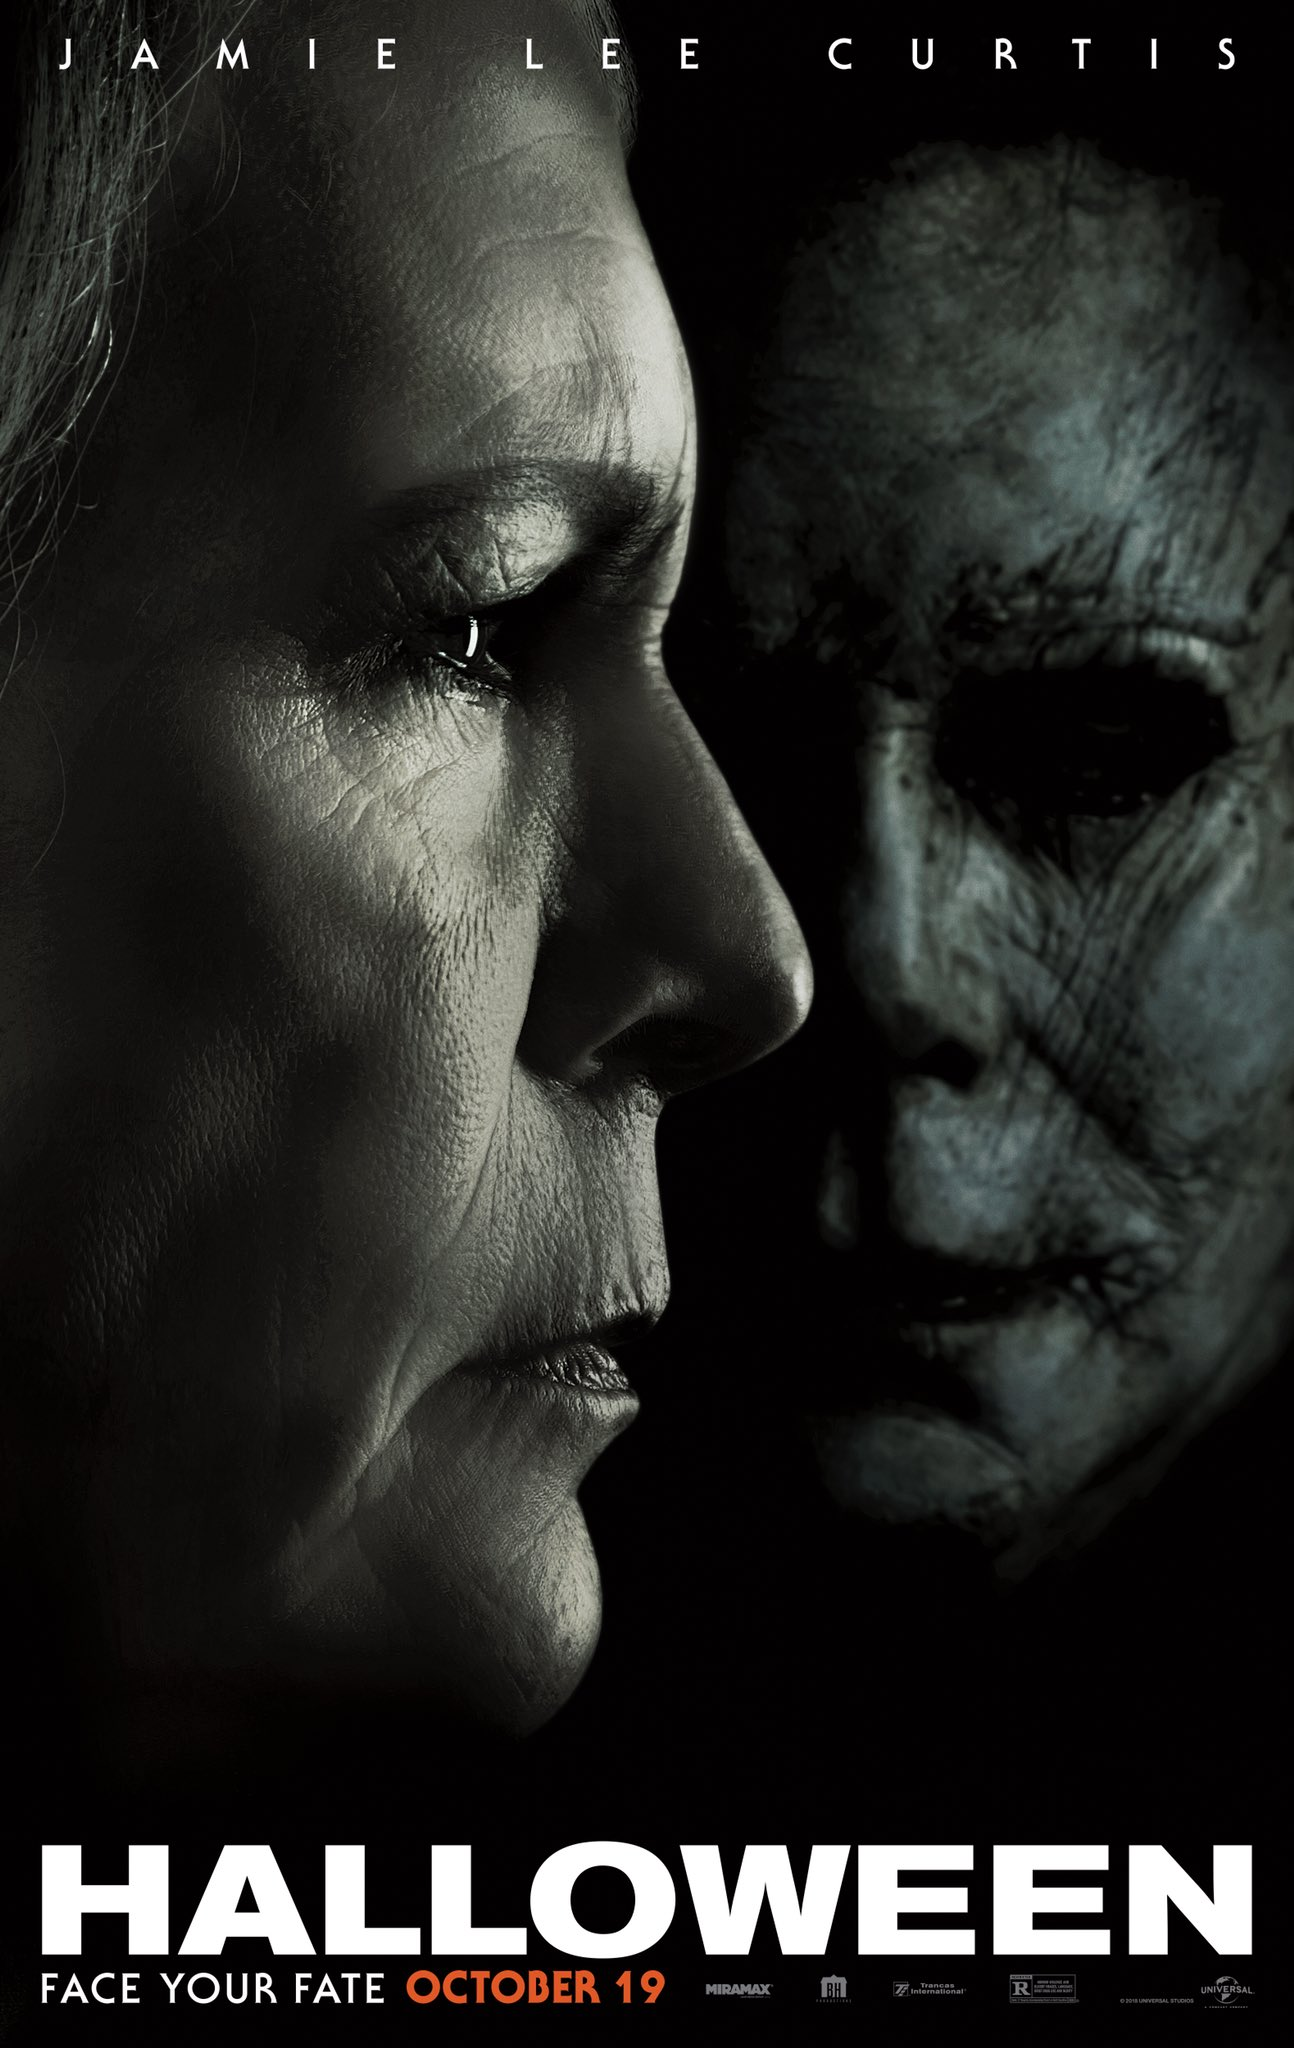 jamie lee curtis teases 'halloween' trailer w/ new poster